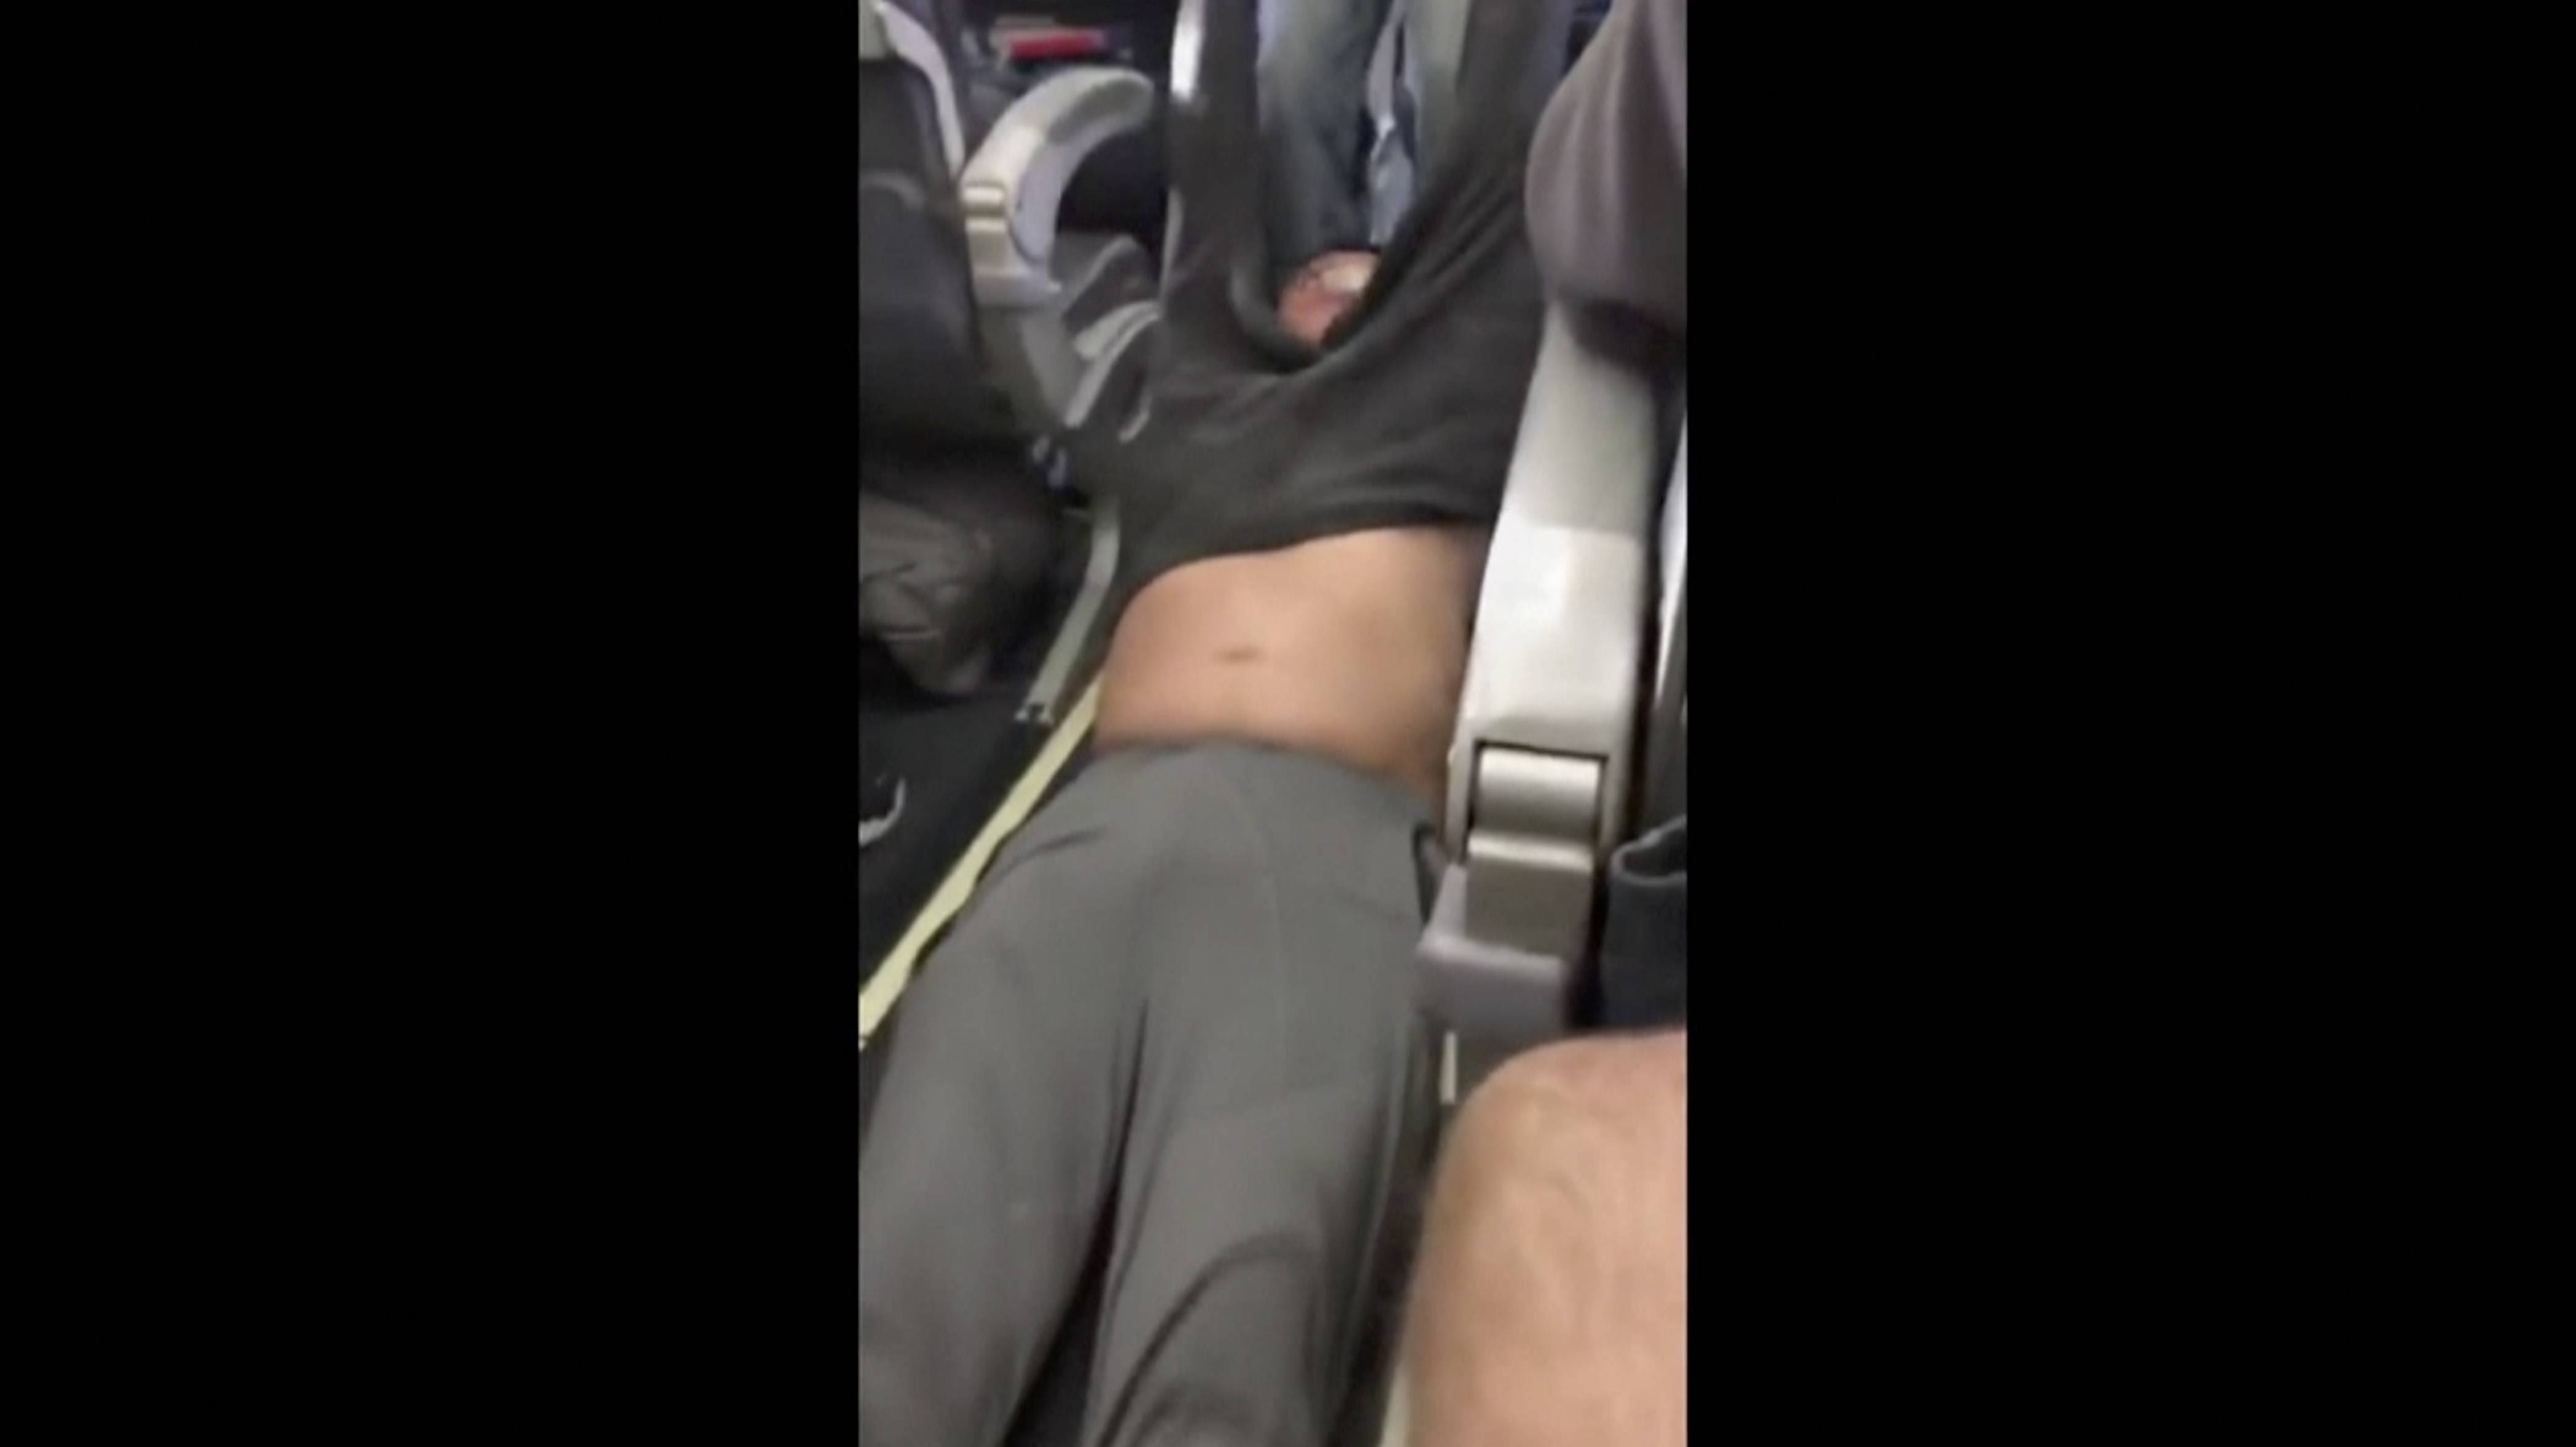 Security officer on leave after dragging man off United flight